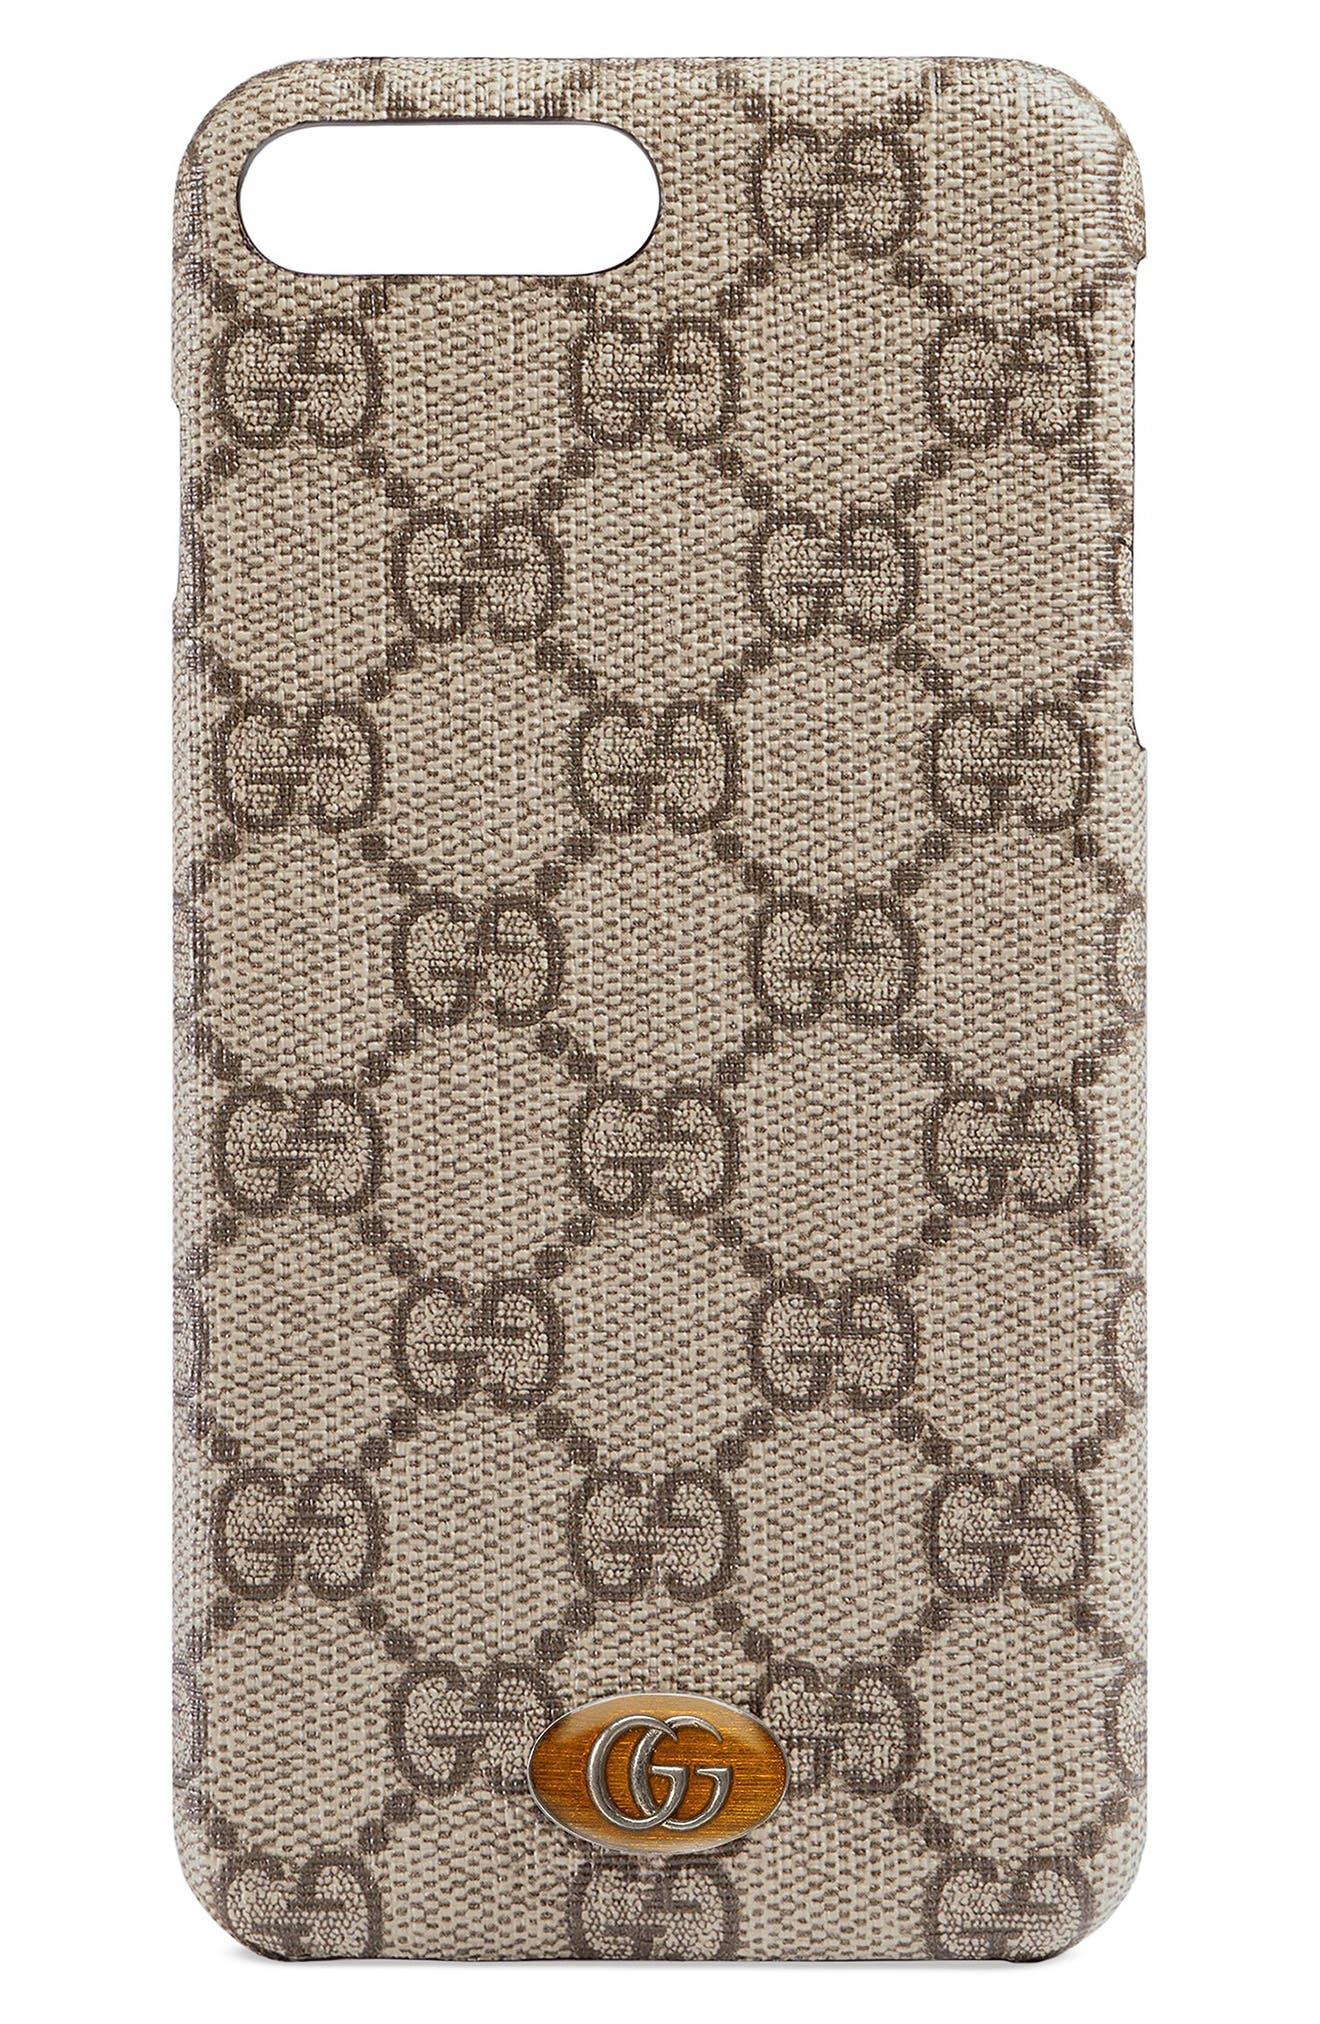 Gucci GG Supreme iPhone 8+ Case